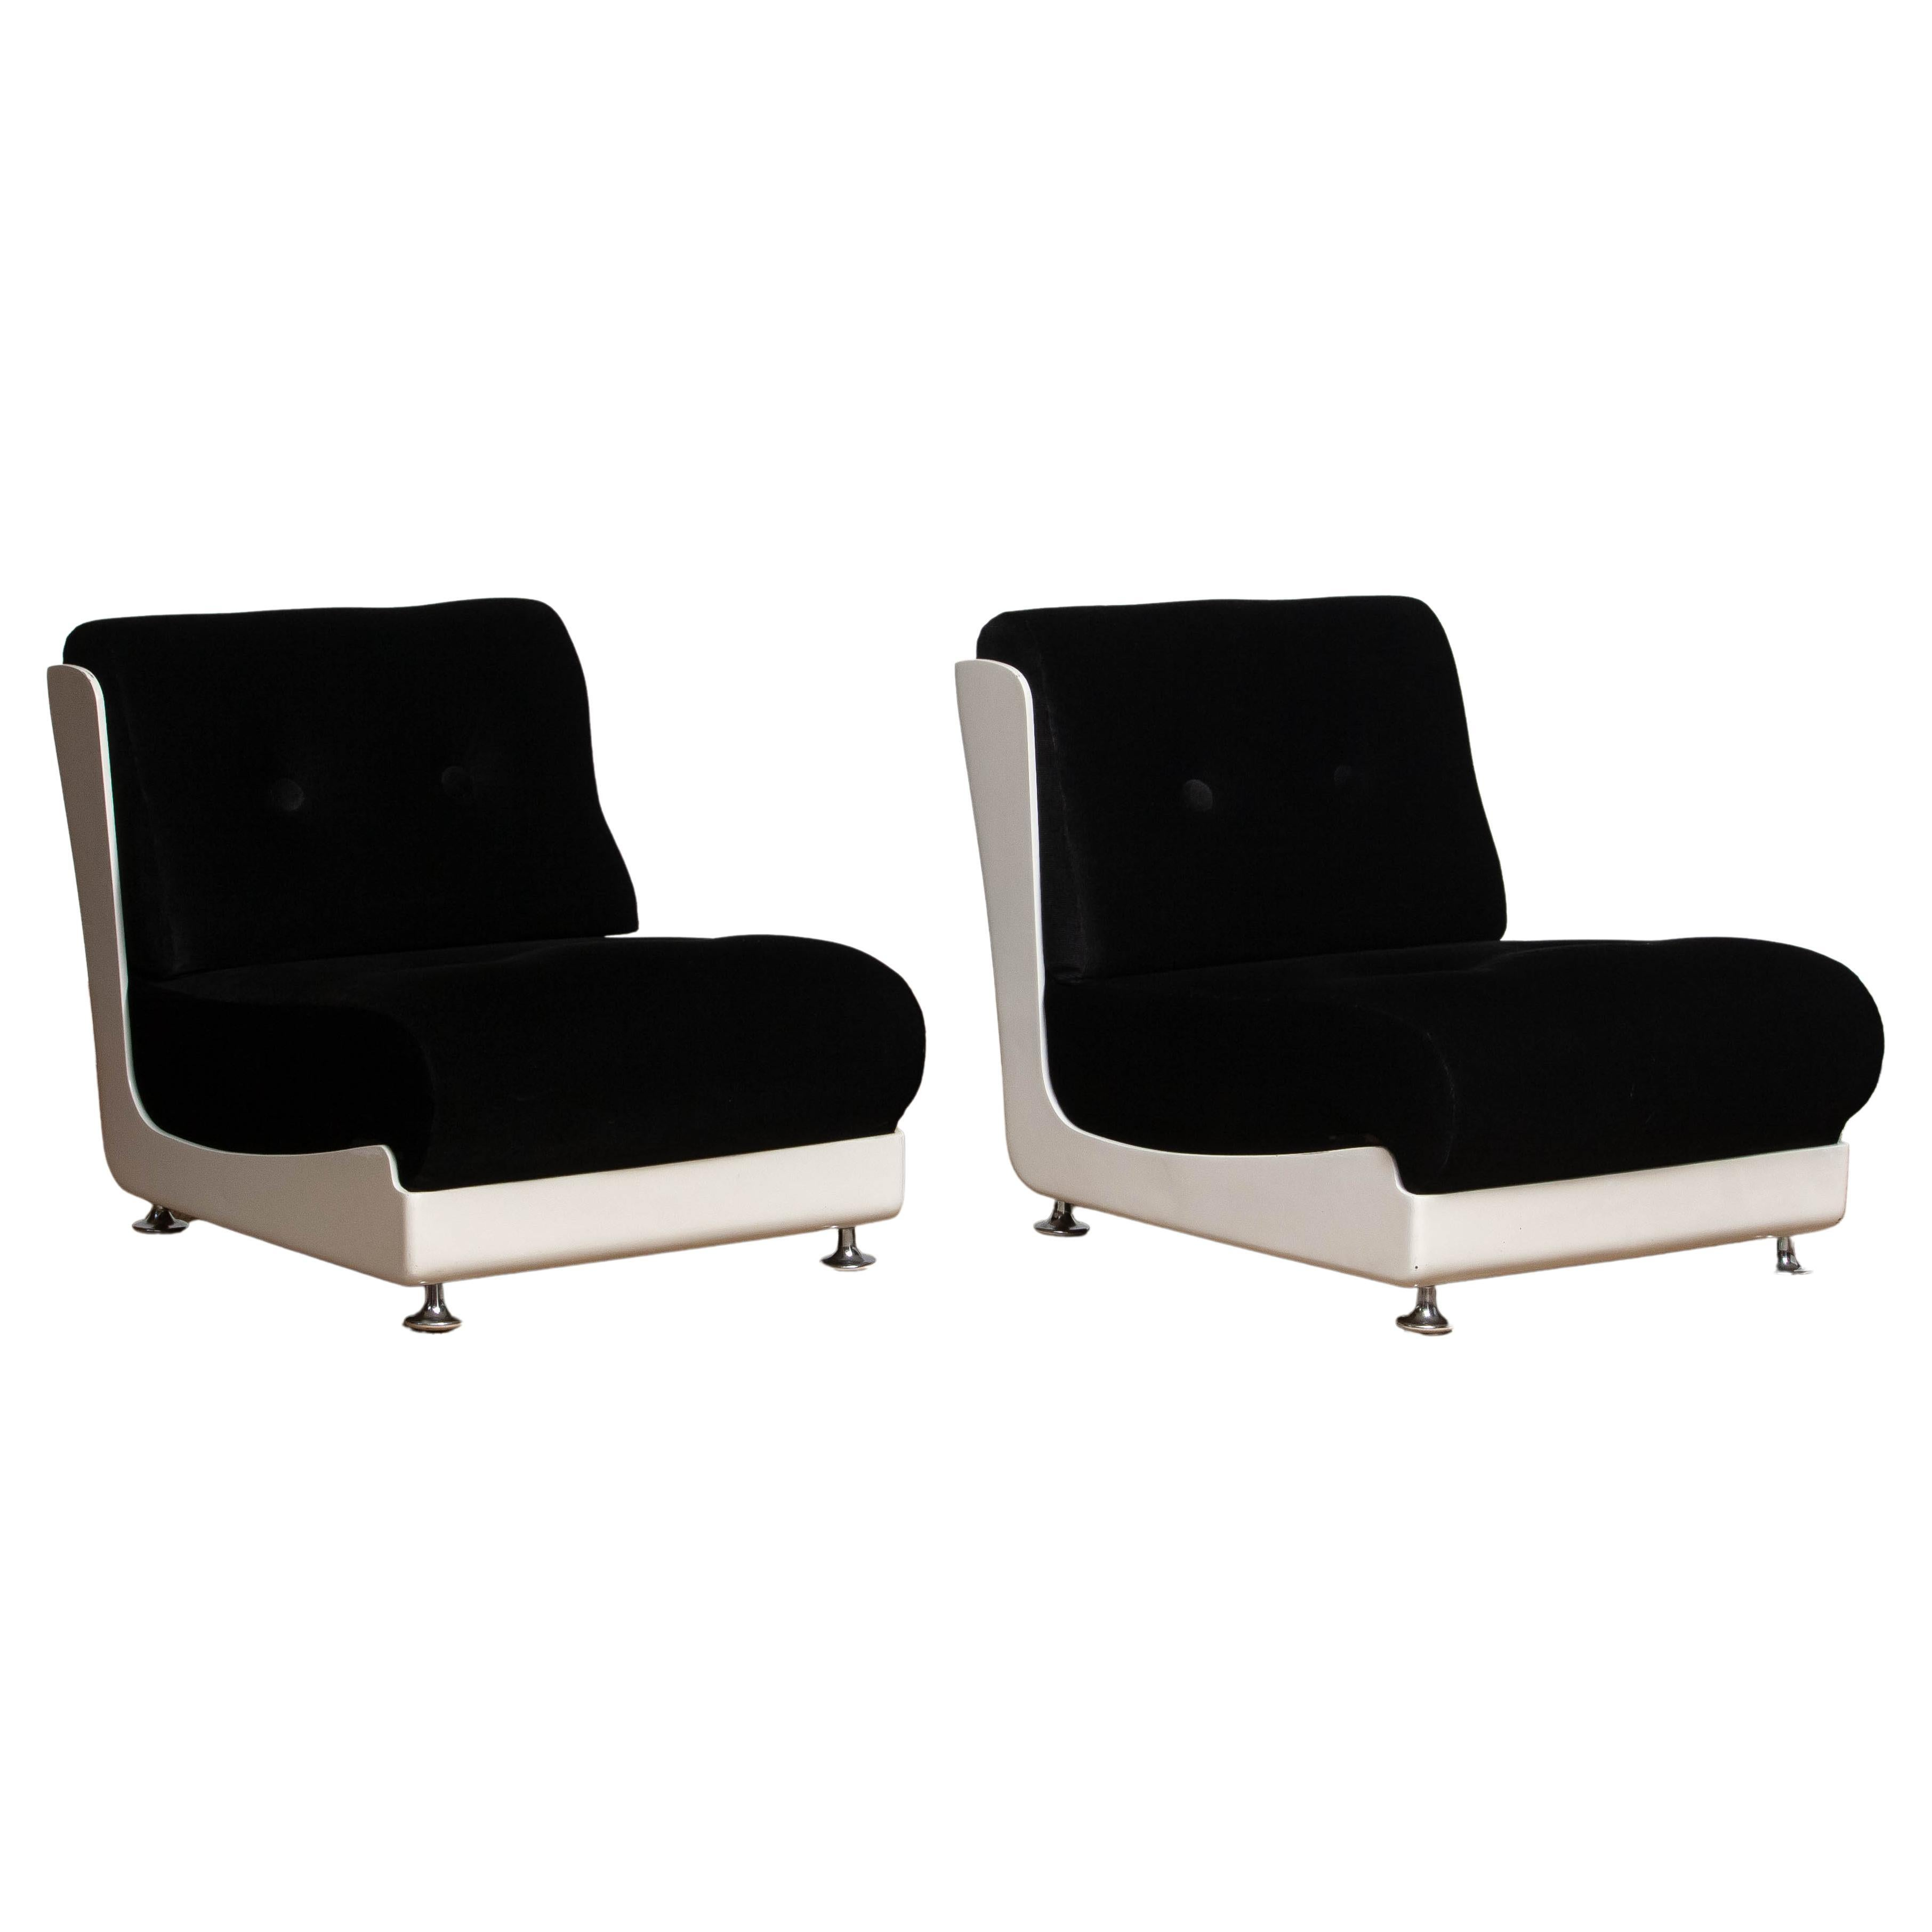 1970's Italian Pair Roche Bobois Lounge Easy Chairs Designed by Mario Bellini